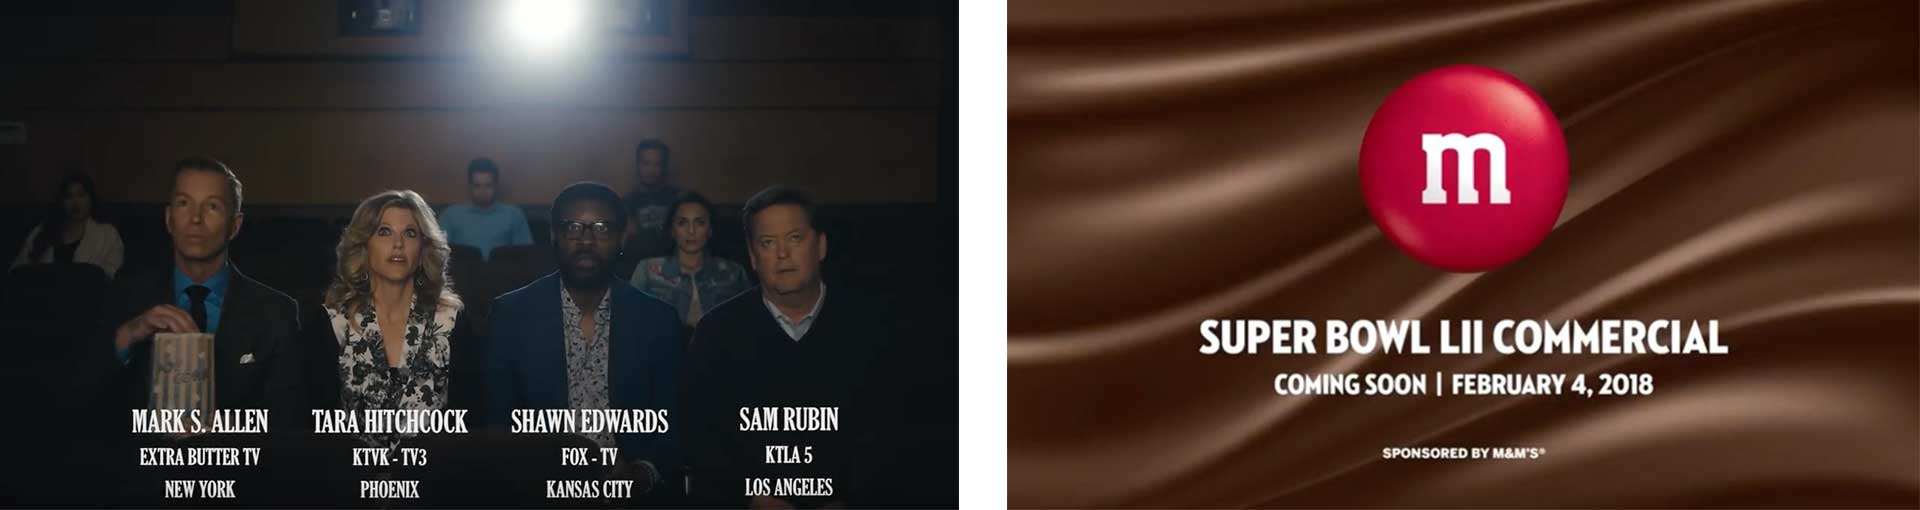 M&Ms SuperBowl LII Commercial Coming Soon